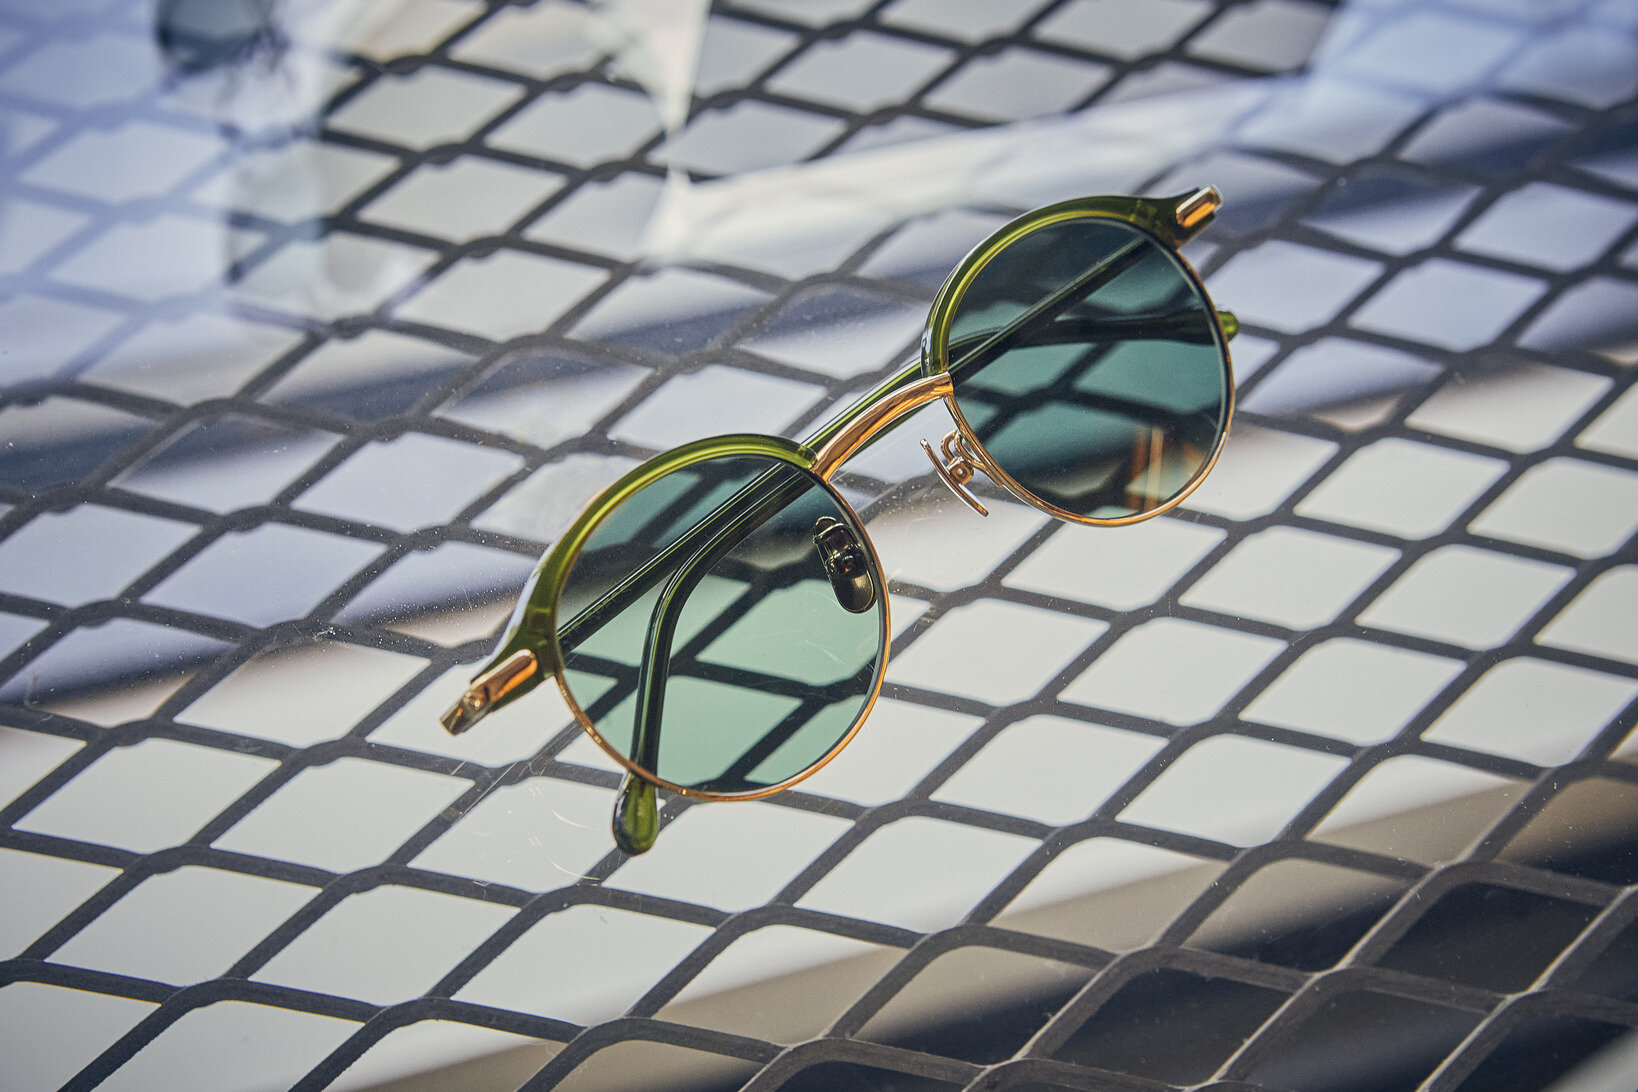 <a href=http://globespecs.co.jp/products/detail/?id=756 target='_blank'>P-COMBO</a> ¥47,300(税込)5色展開/サイ スペックス(グローブスペックス)